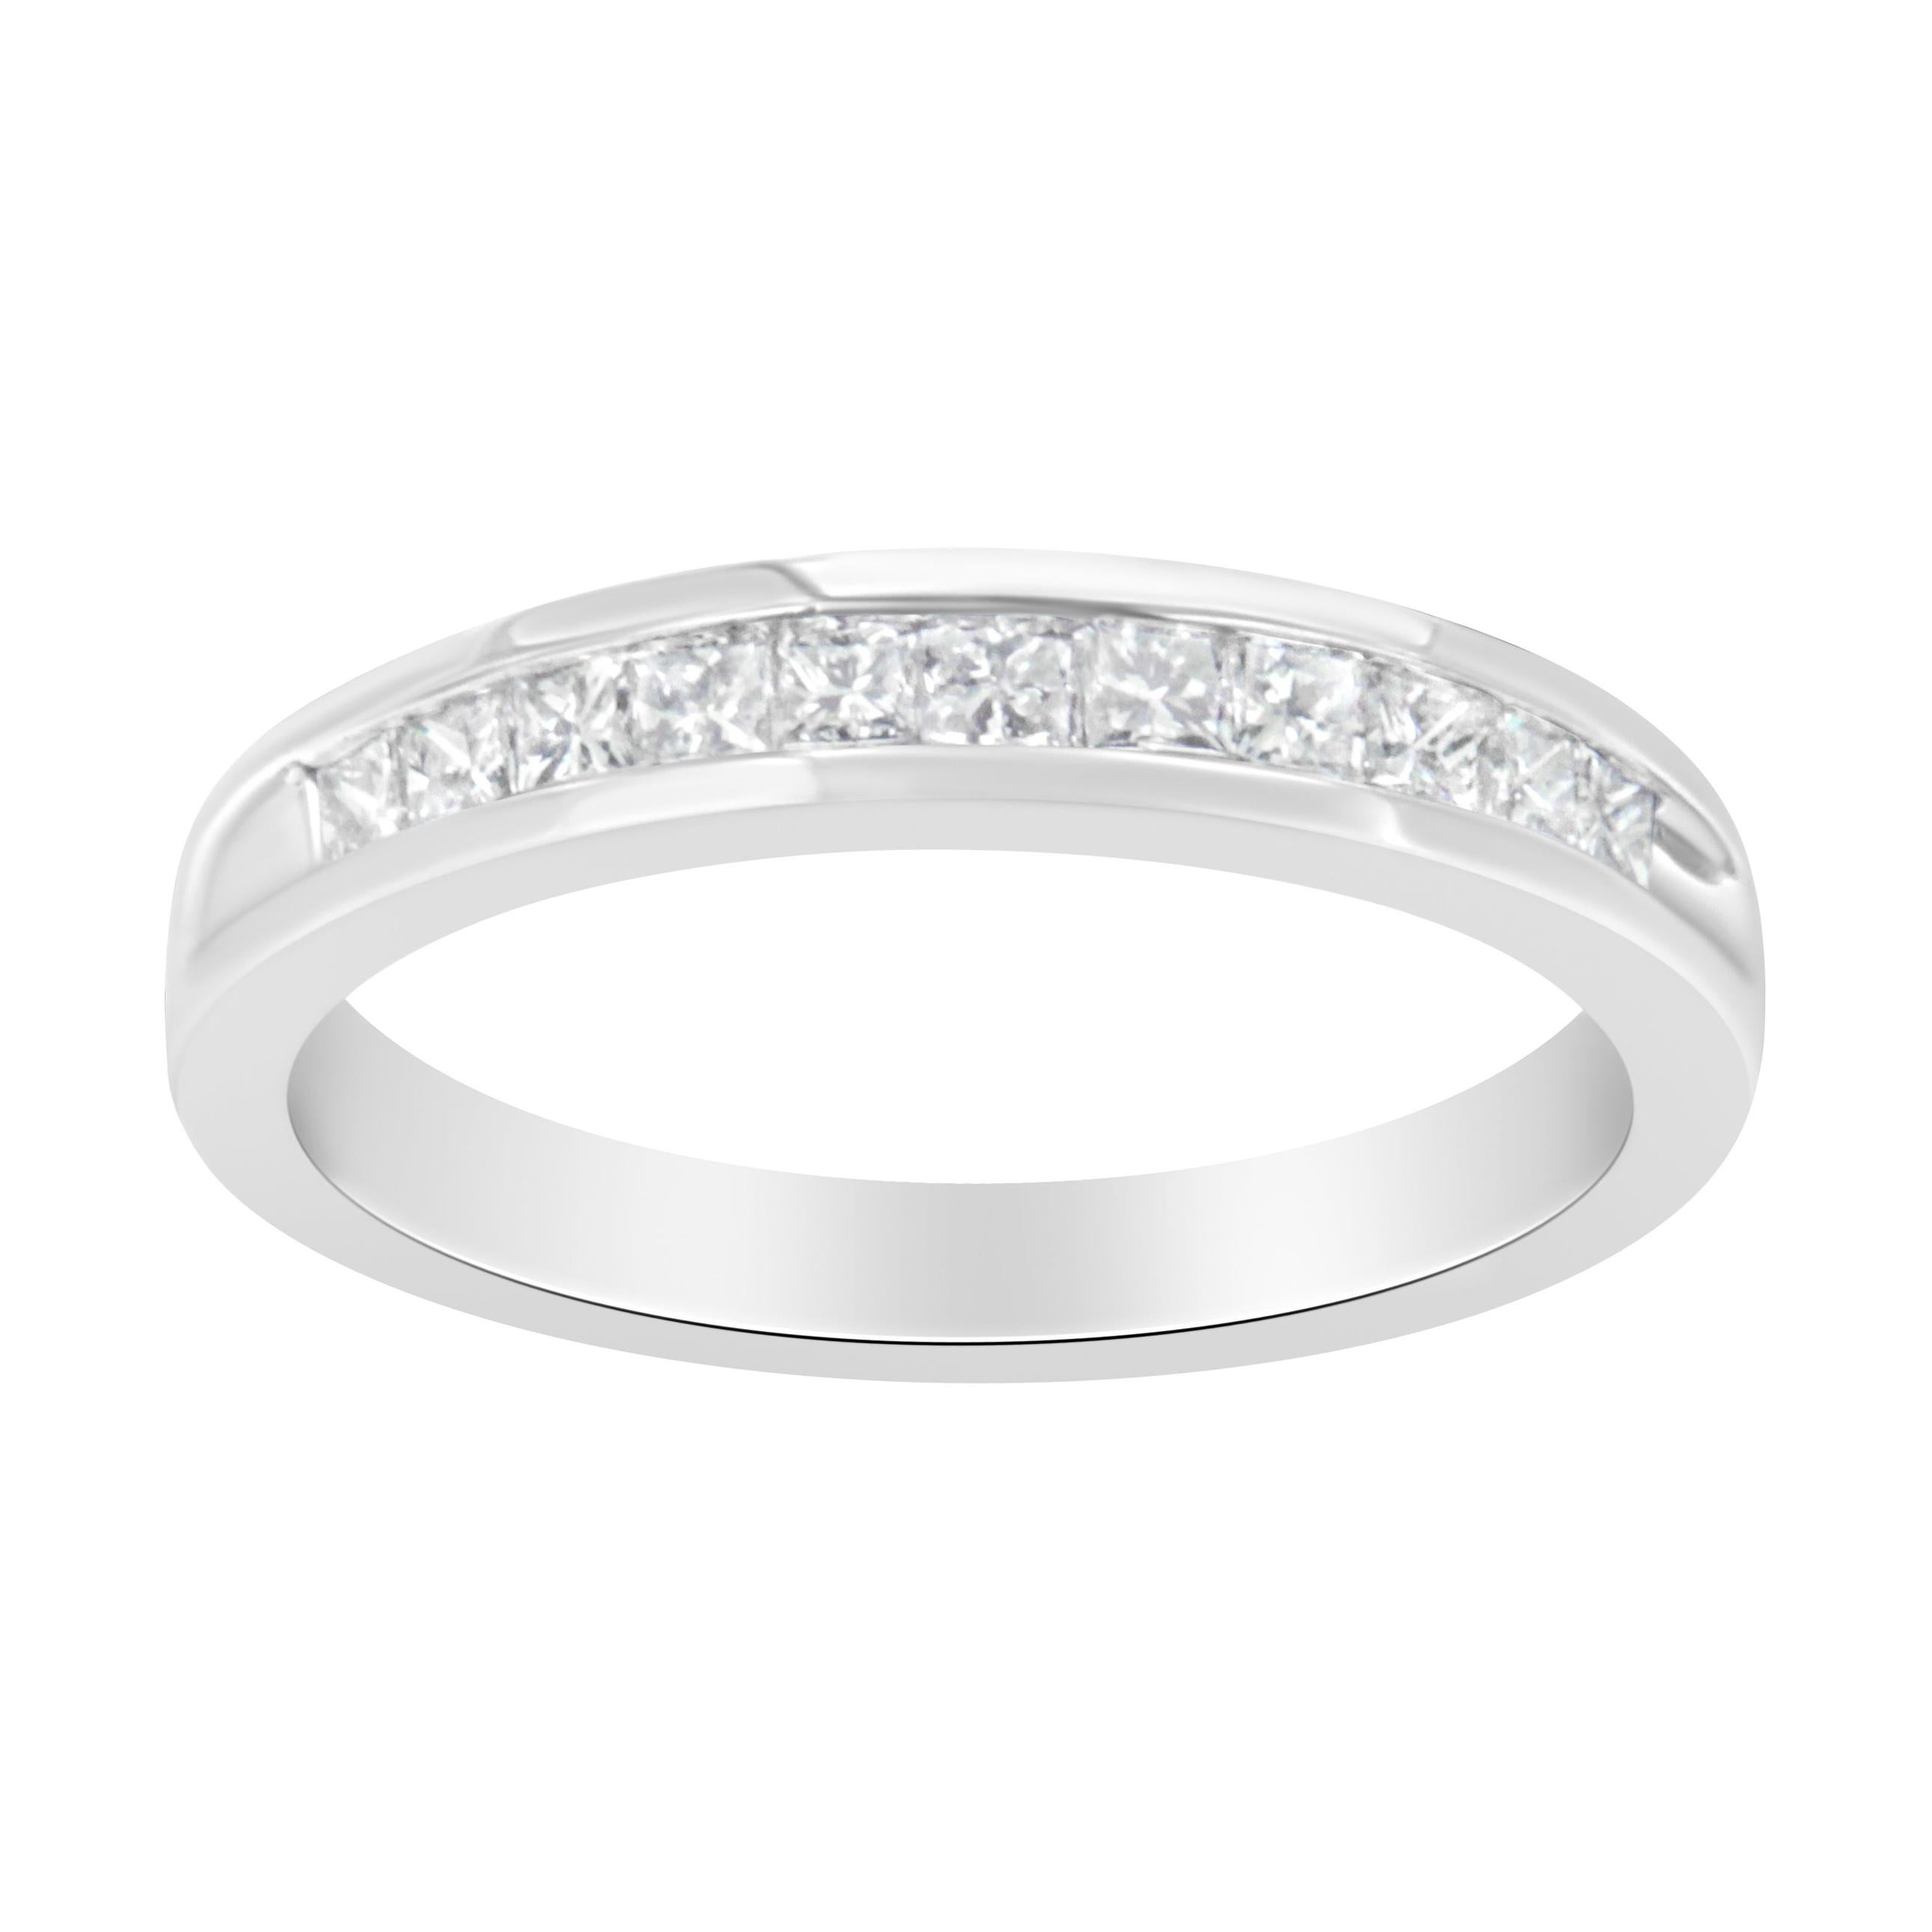 IGI Certified 1/2 Cttw Princess Cut Diamond 18K White Gold Band, Ring